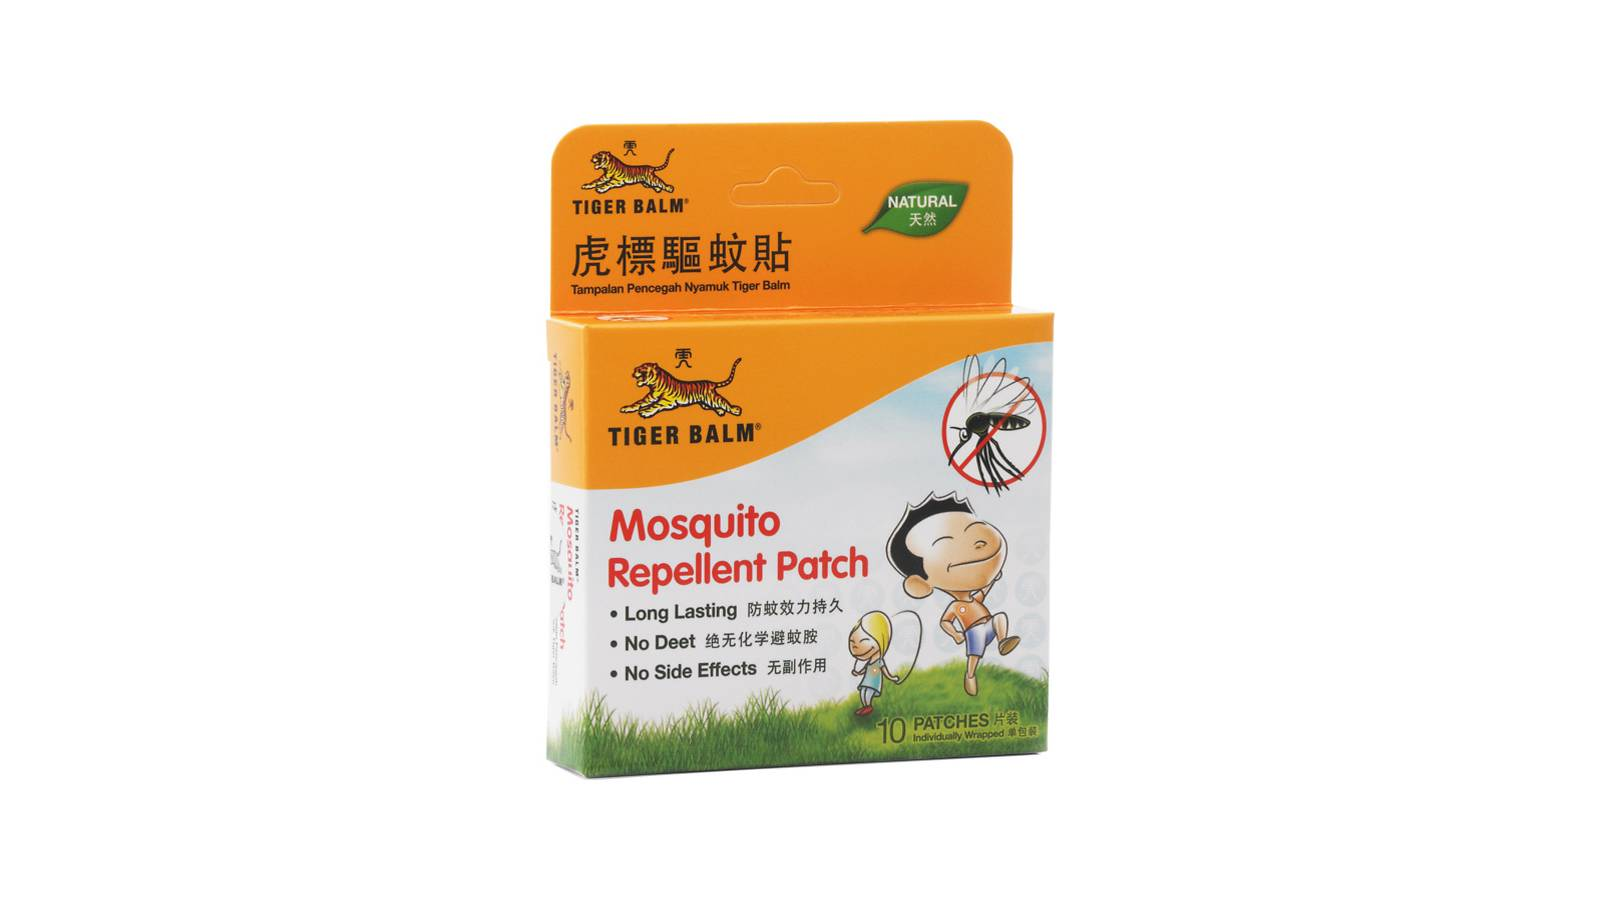 Parents-Tiger Balm Mosquito Repellent Patch